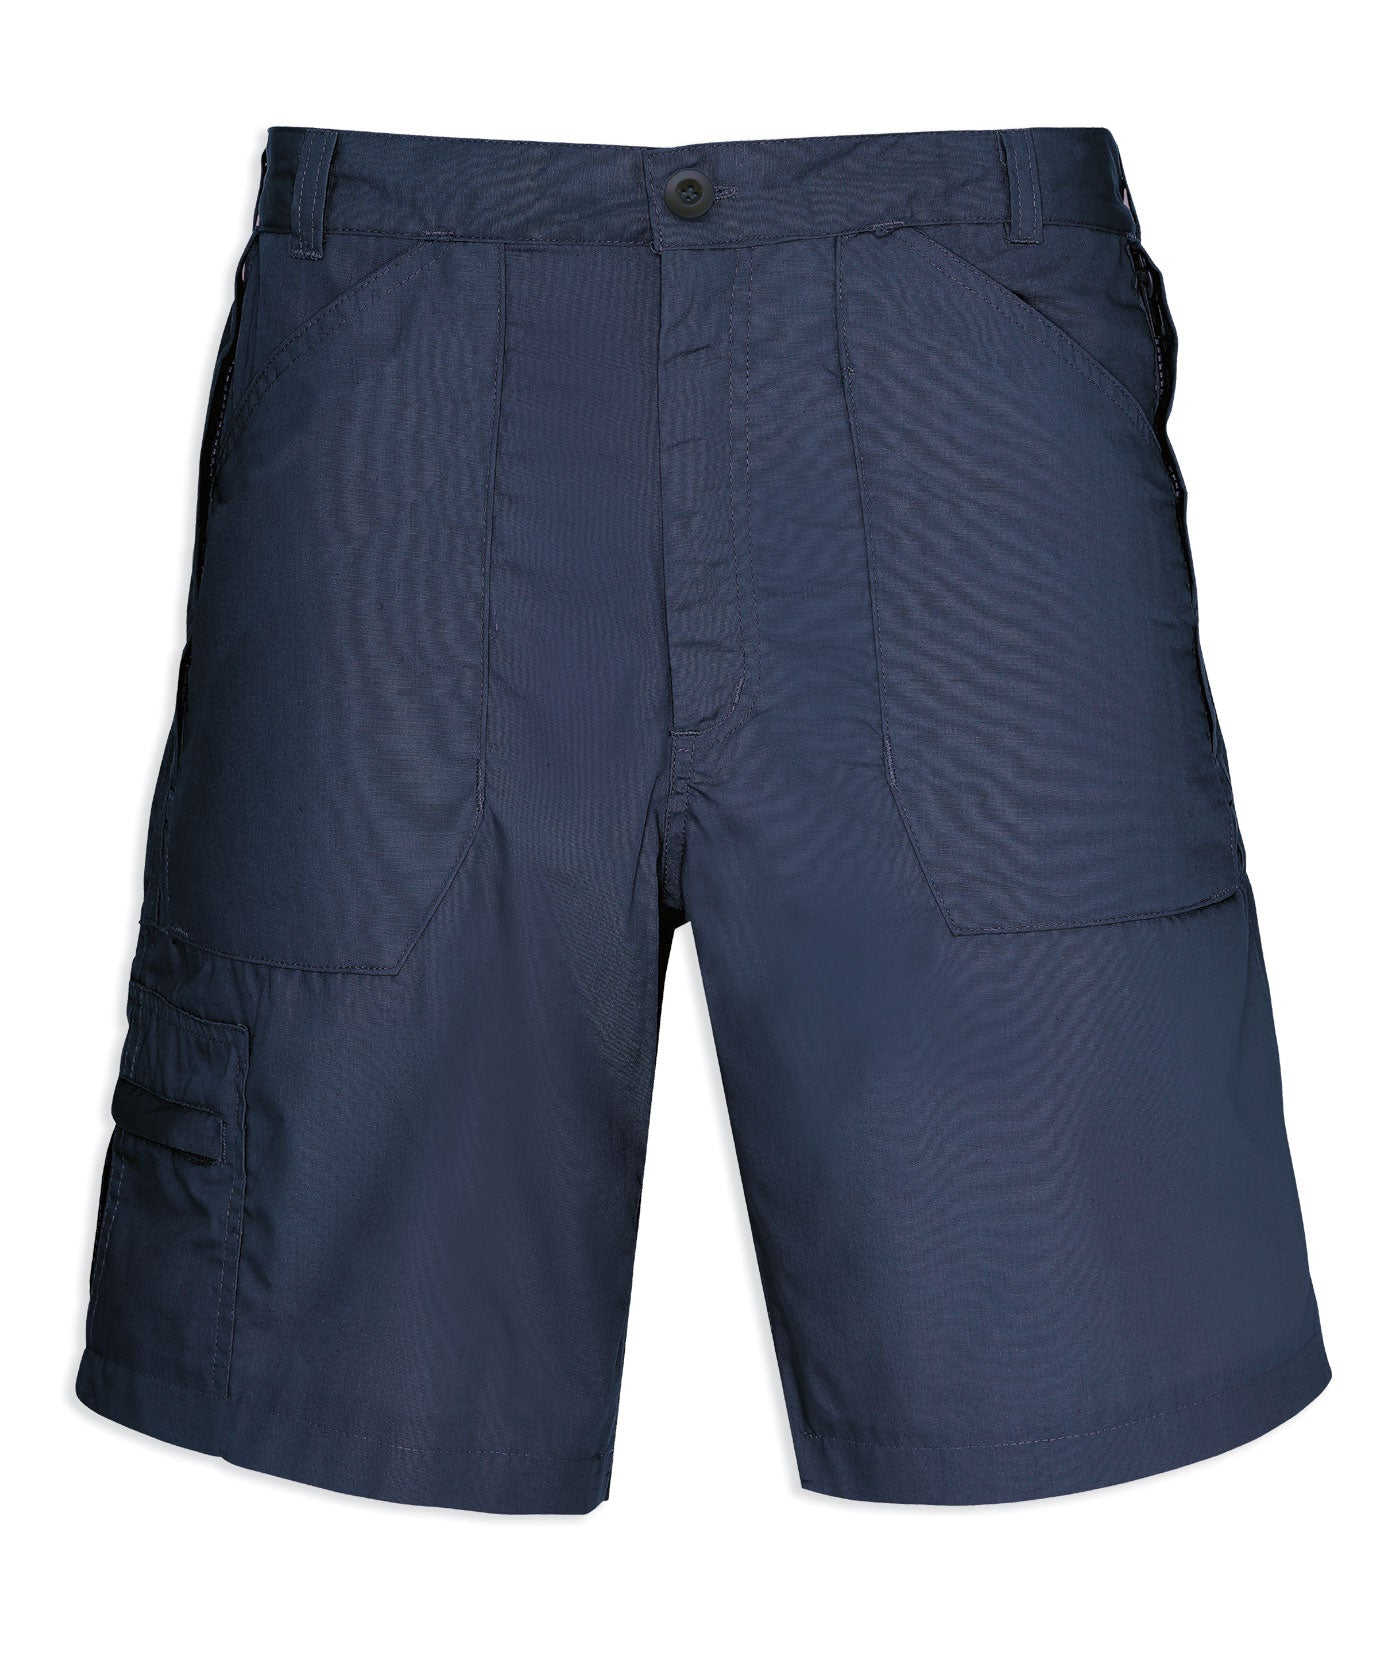 navy hiking shorts